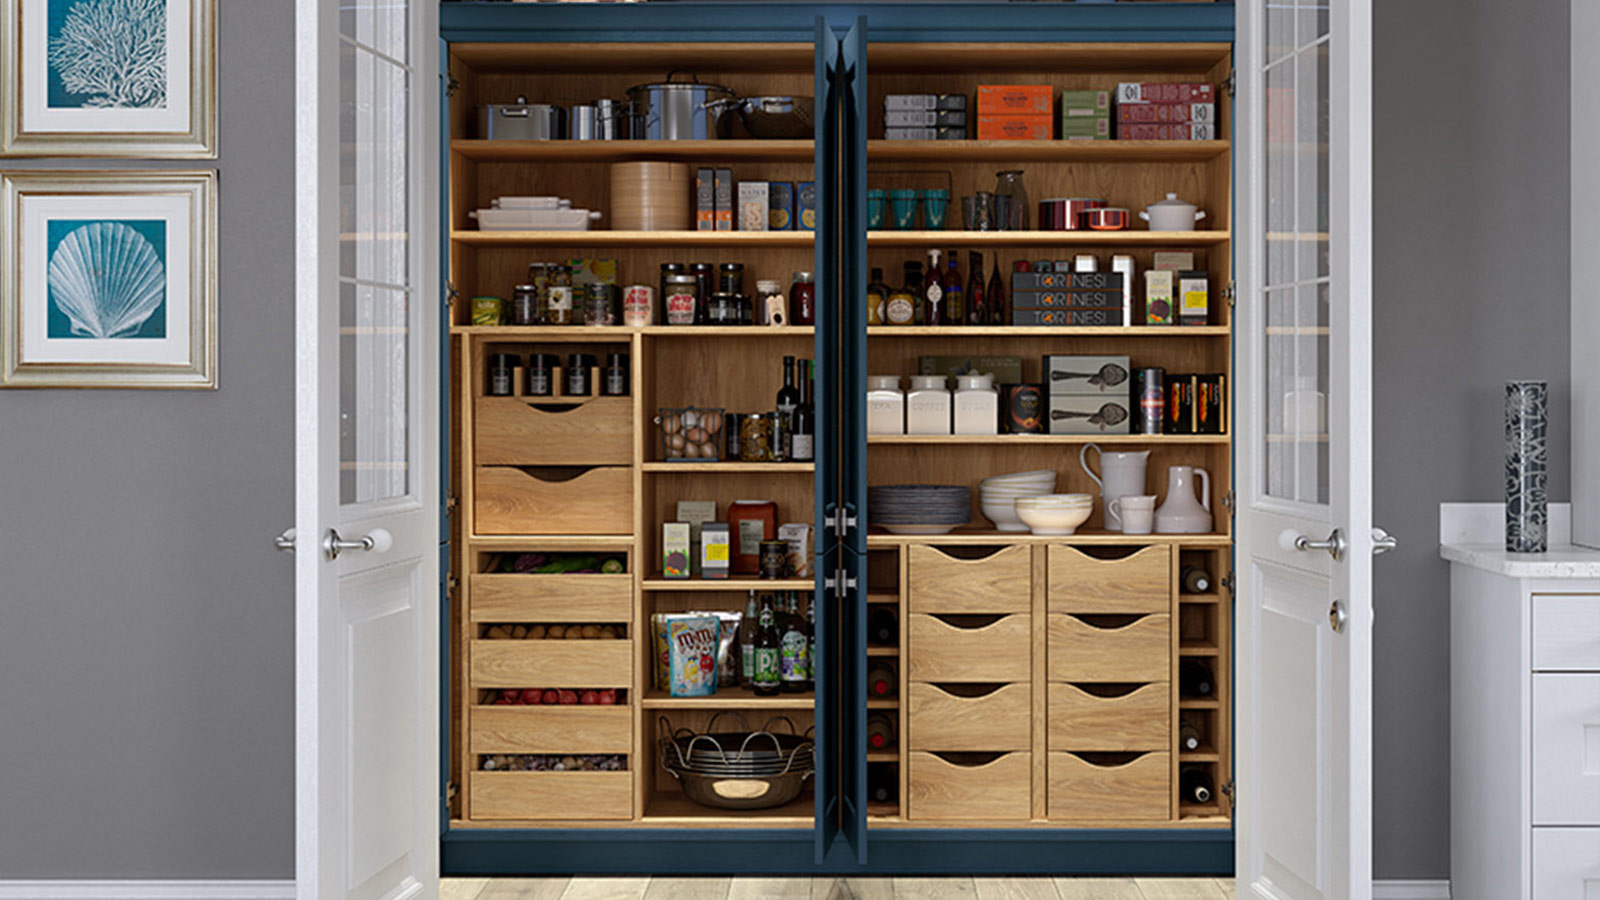 Pantry storage feature